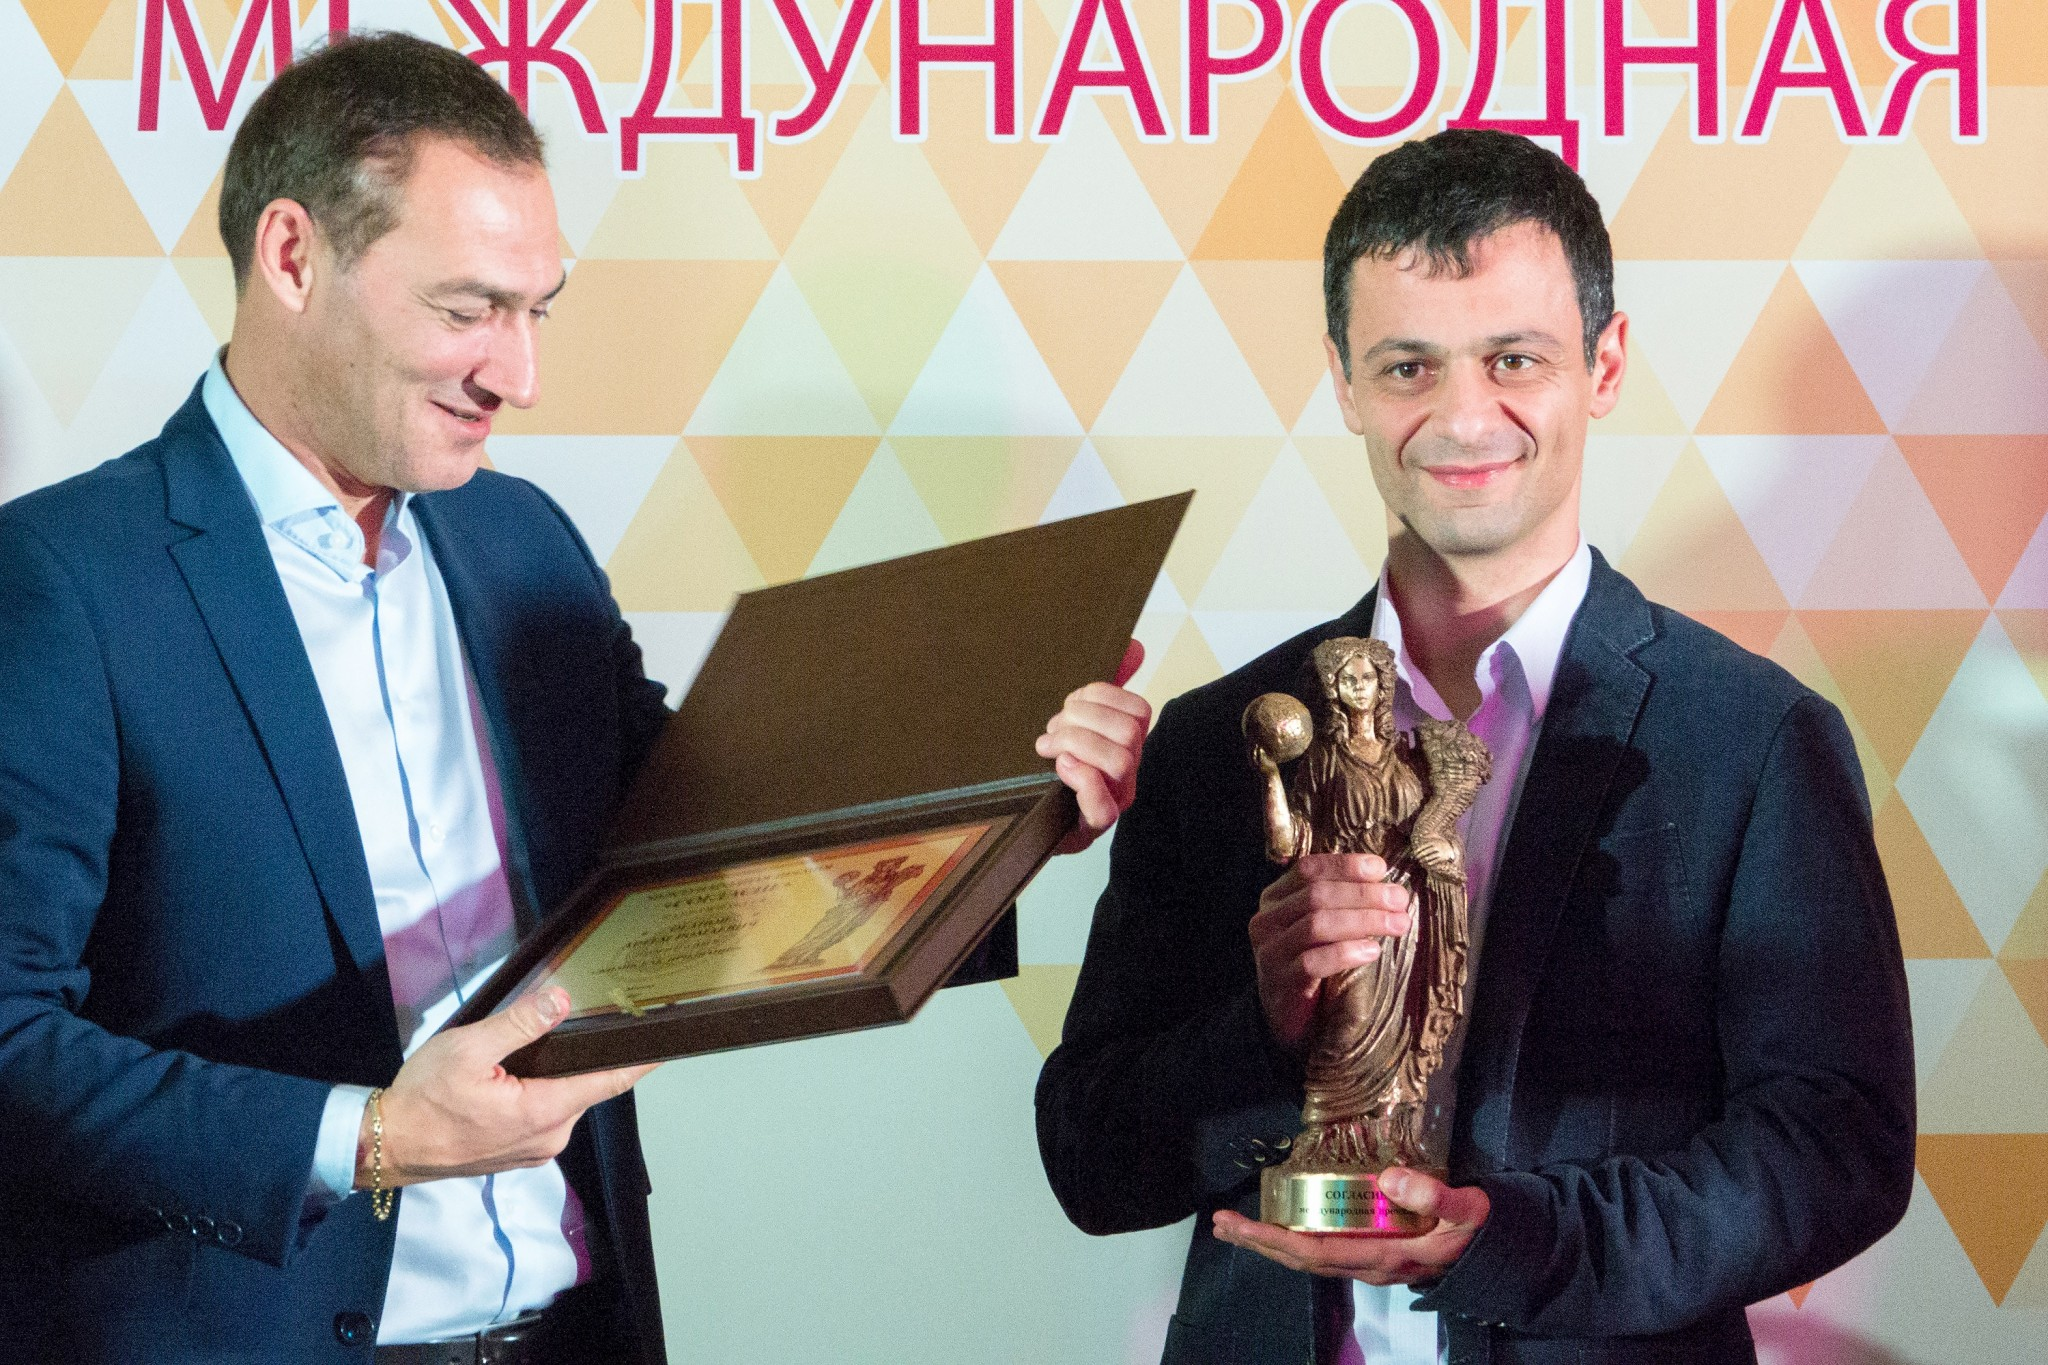 Oganov becoming the youngest person to receive the Concord prize, awarded by the Union of Russian Armenians in collaboration with the Government of Russia and the Russian Presidential Council for Interethnic Relations. Photo: Skoltech.